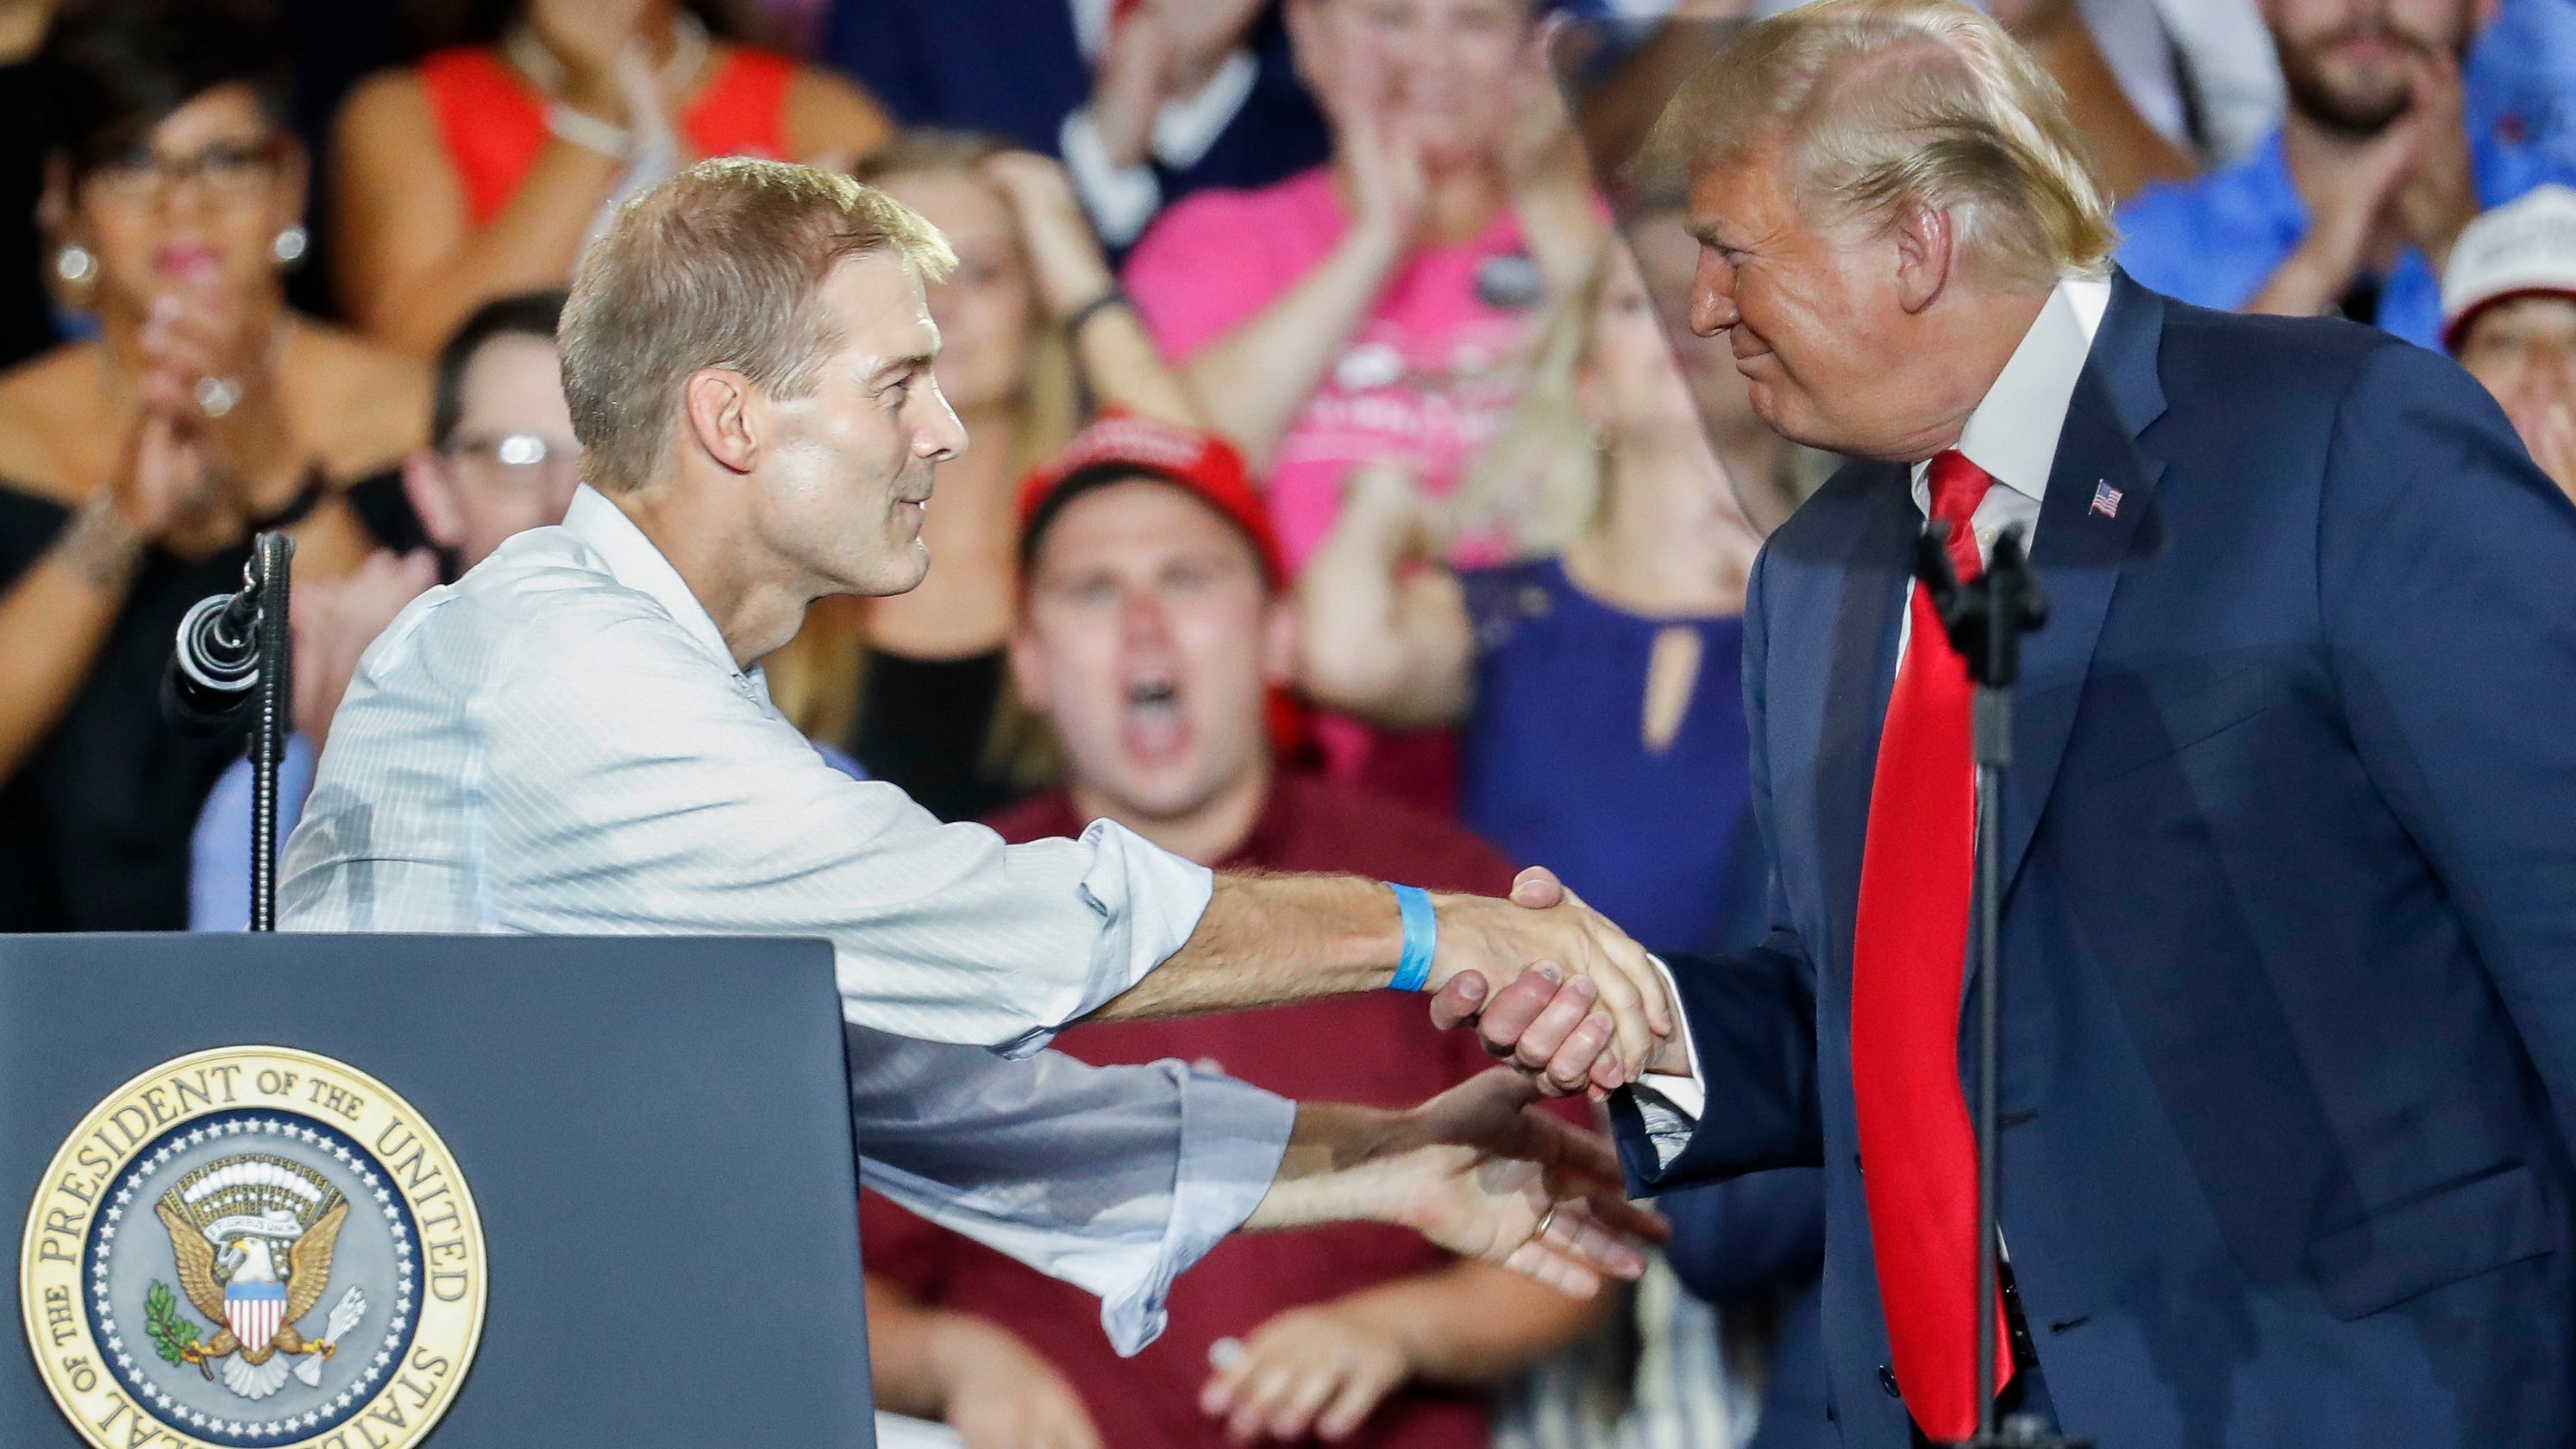 Democrats trying to impeach President Trump are misusing their authority: Rep. Jim Jordan